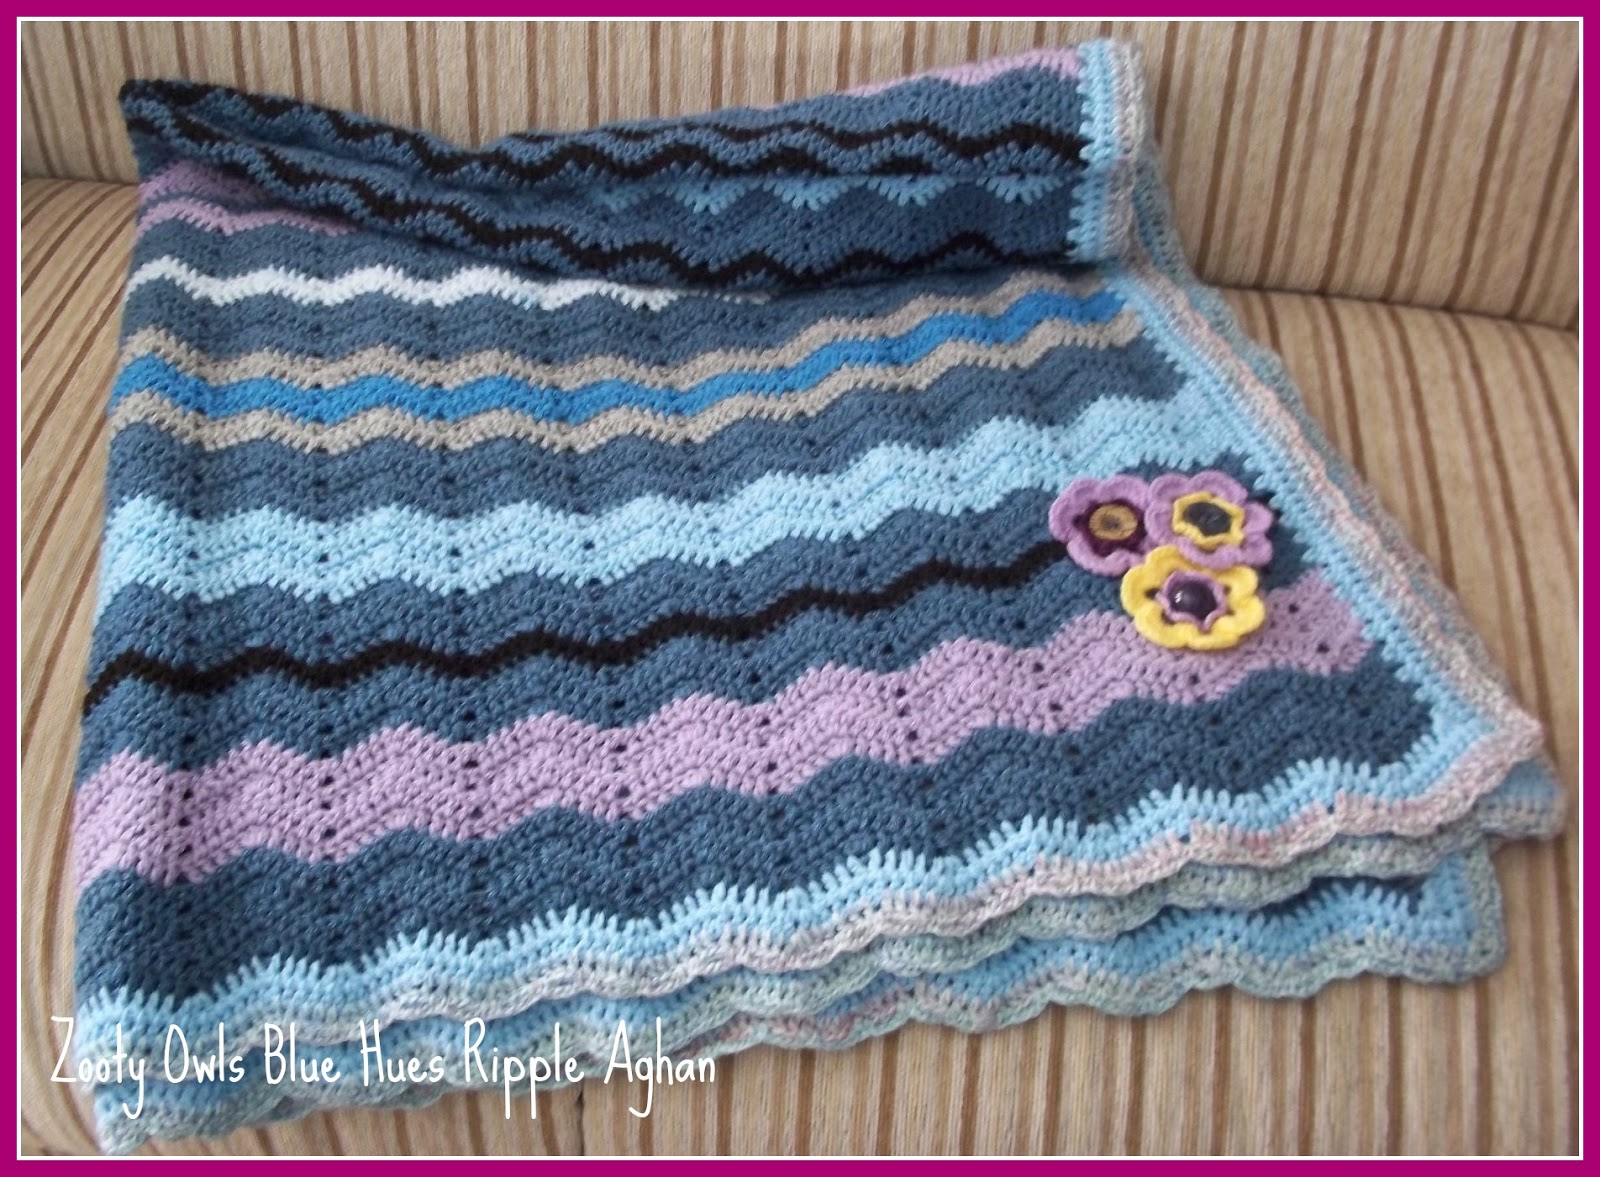 Zooty owls crafty blog ripple crochet afghan blue hues the border is simply two rows of double crochet in baby blue a row of double crochet and a row of single crochet and chain in some oddment of variegated bankloansurffo Images